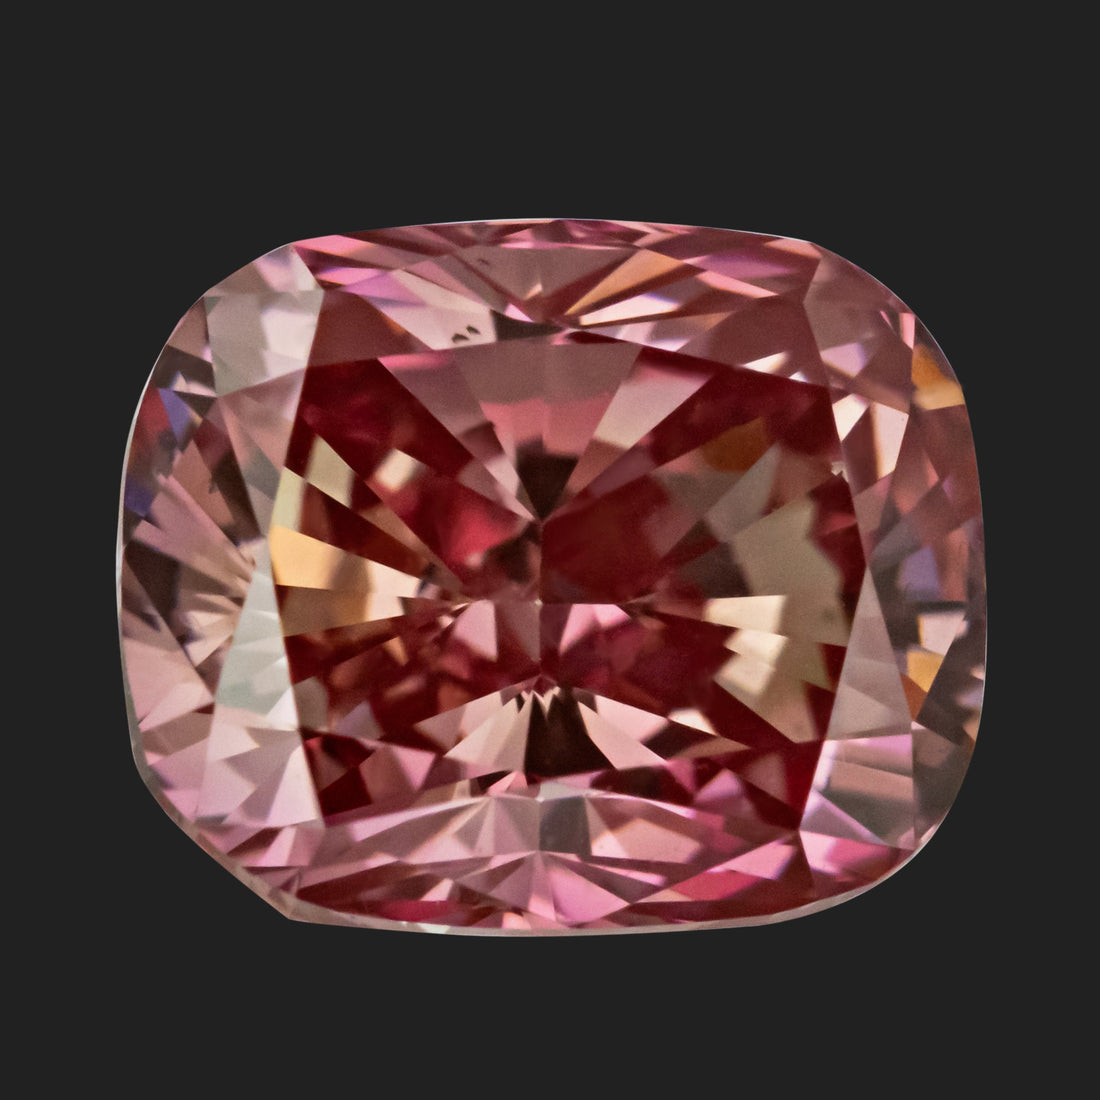 1.30 Carat Cushion Cut Fancy Vivid Orangy Pink Lab Created Diamond